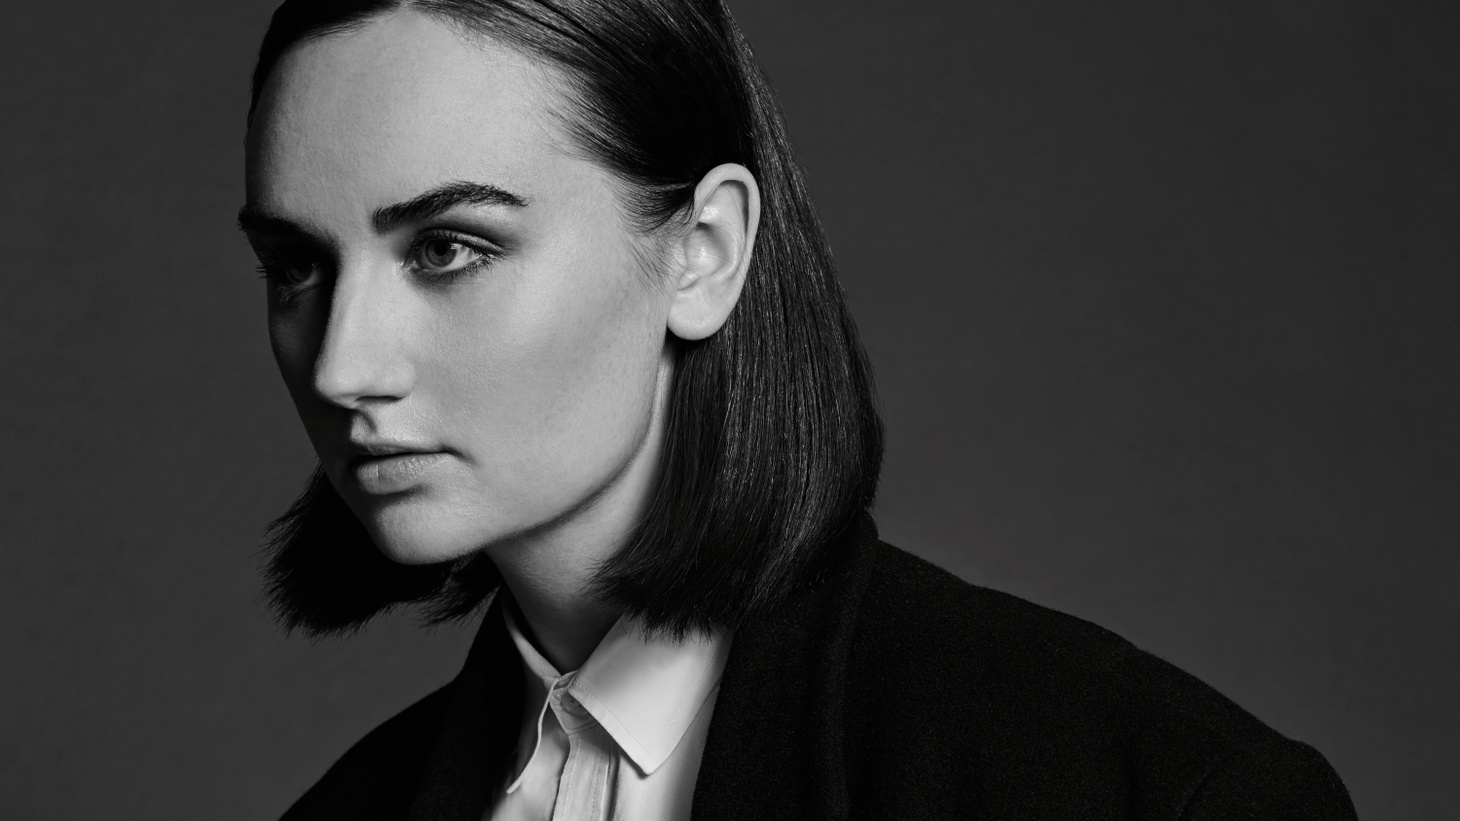 Jason Bentley has been spinning the single from Melbourne-based singer Meg Mac.